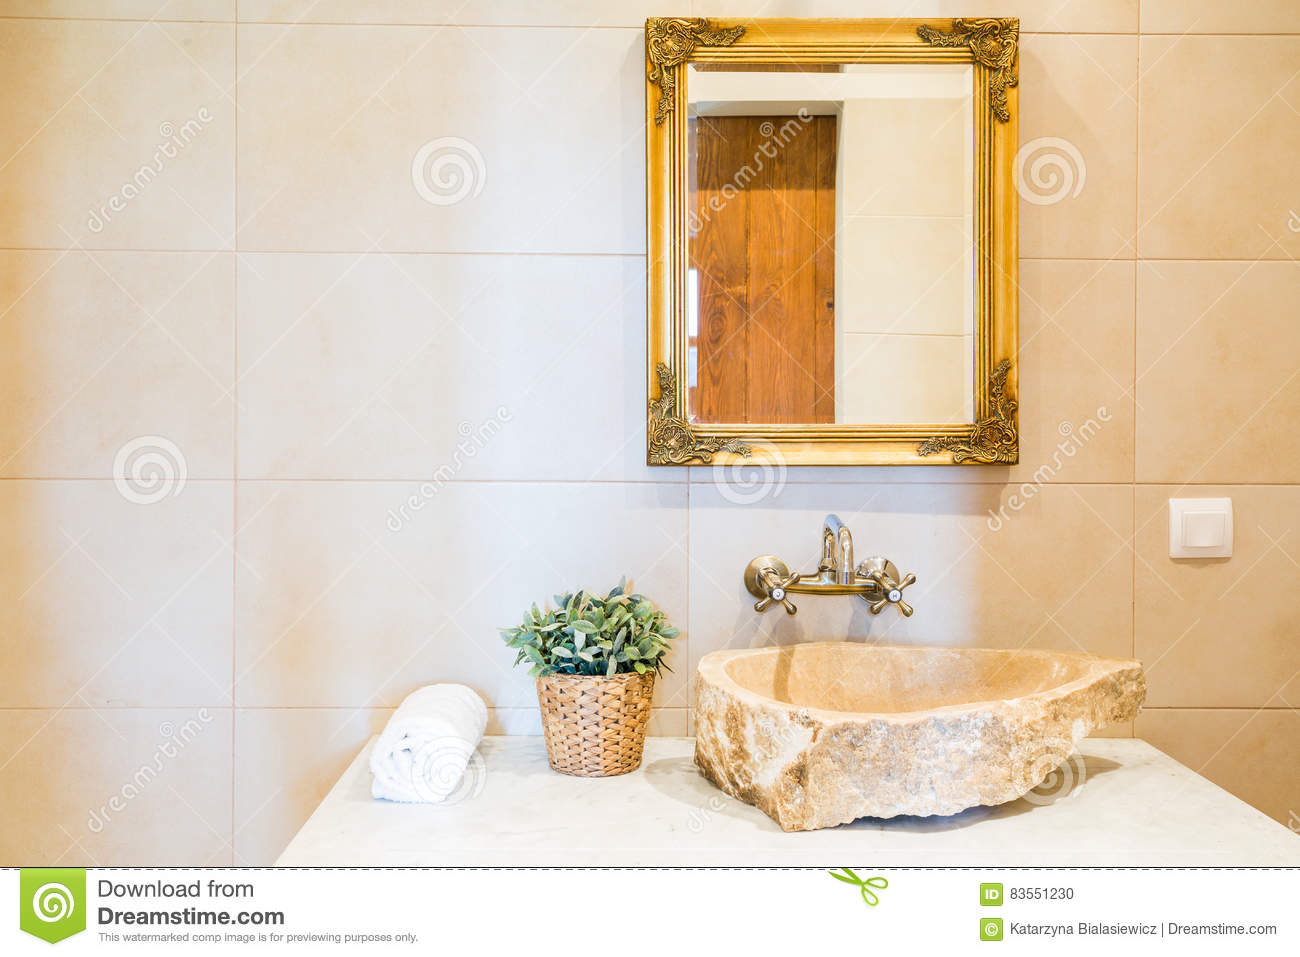 Stone Sink And Mirror In Bathroom Stock Photo - Image of stylish ...